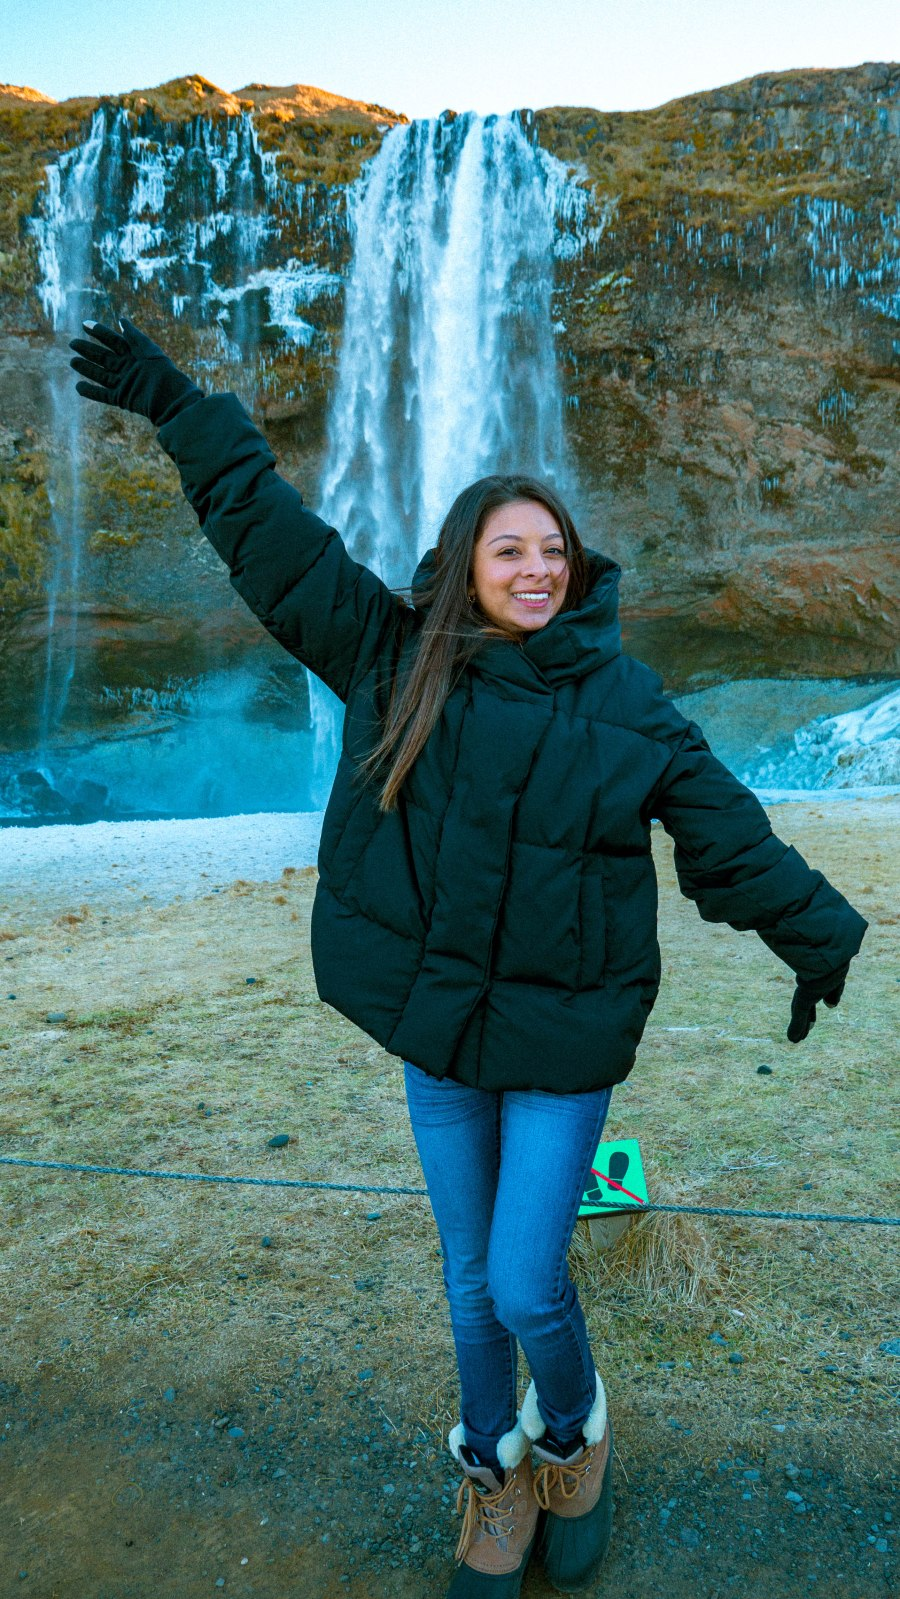 Andrea smile waterfall 7